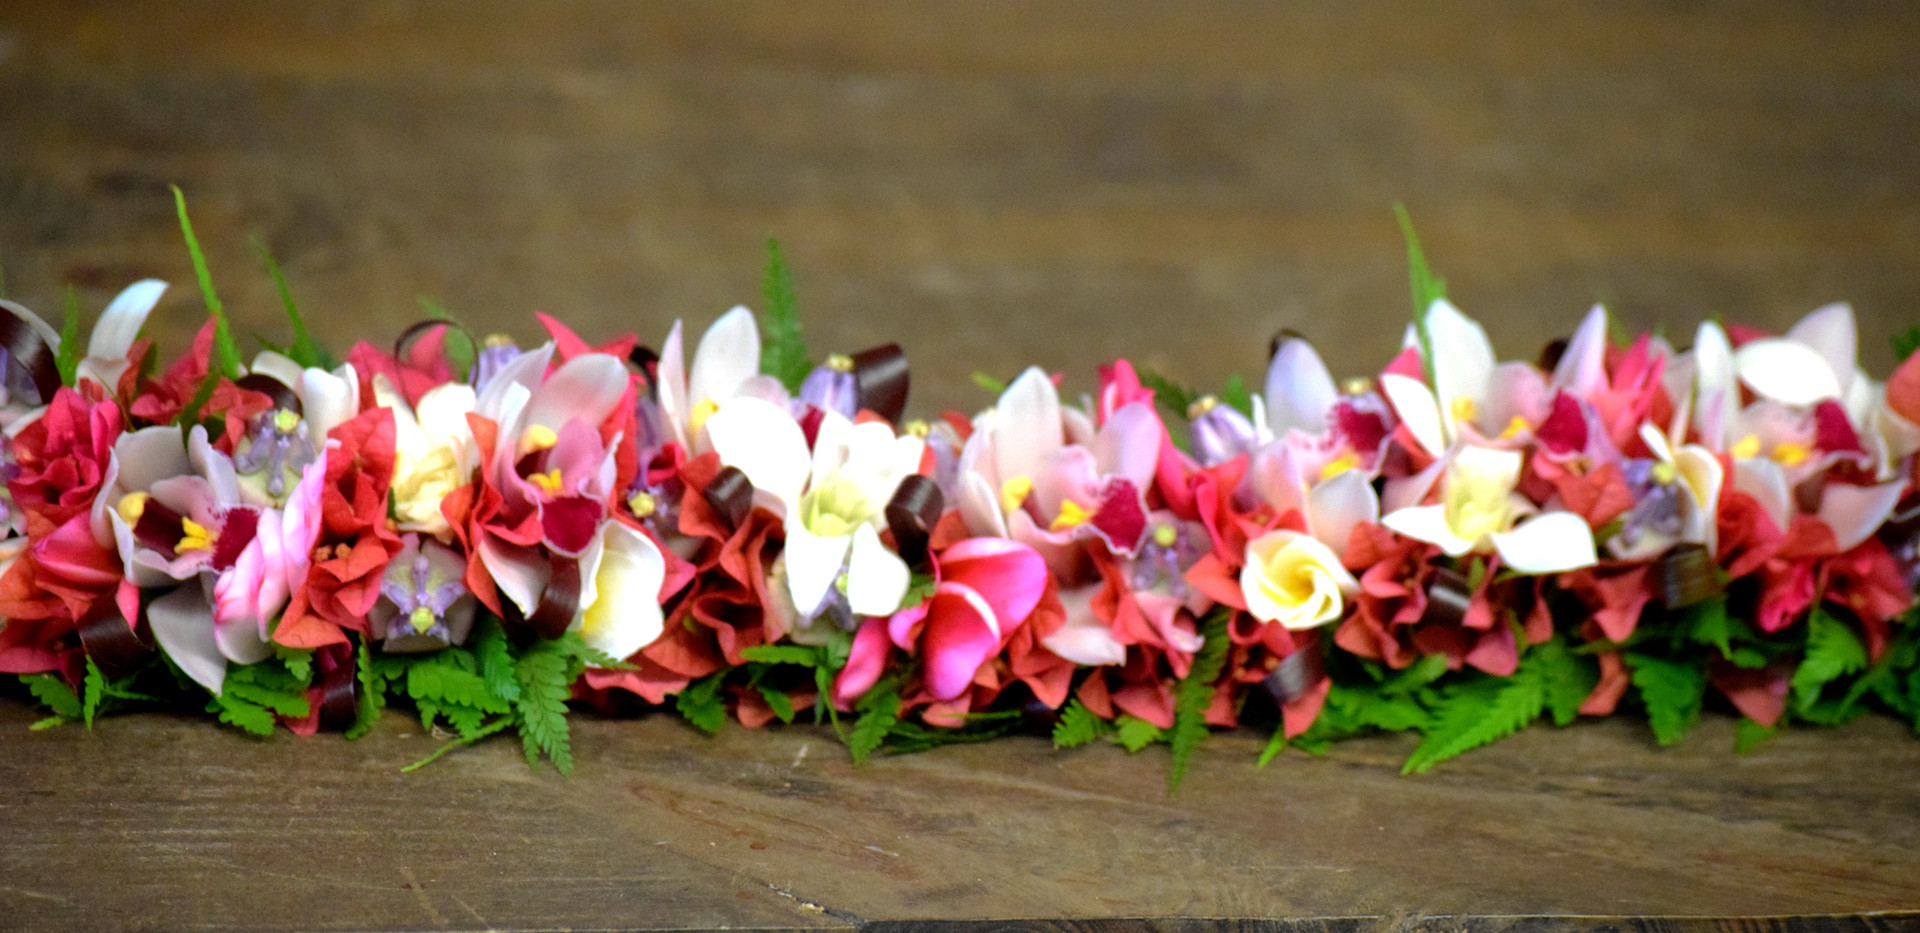 Pinks, whites and purples lei po'o